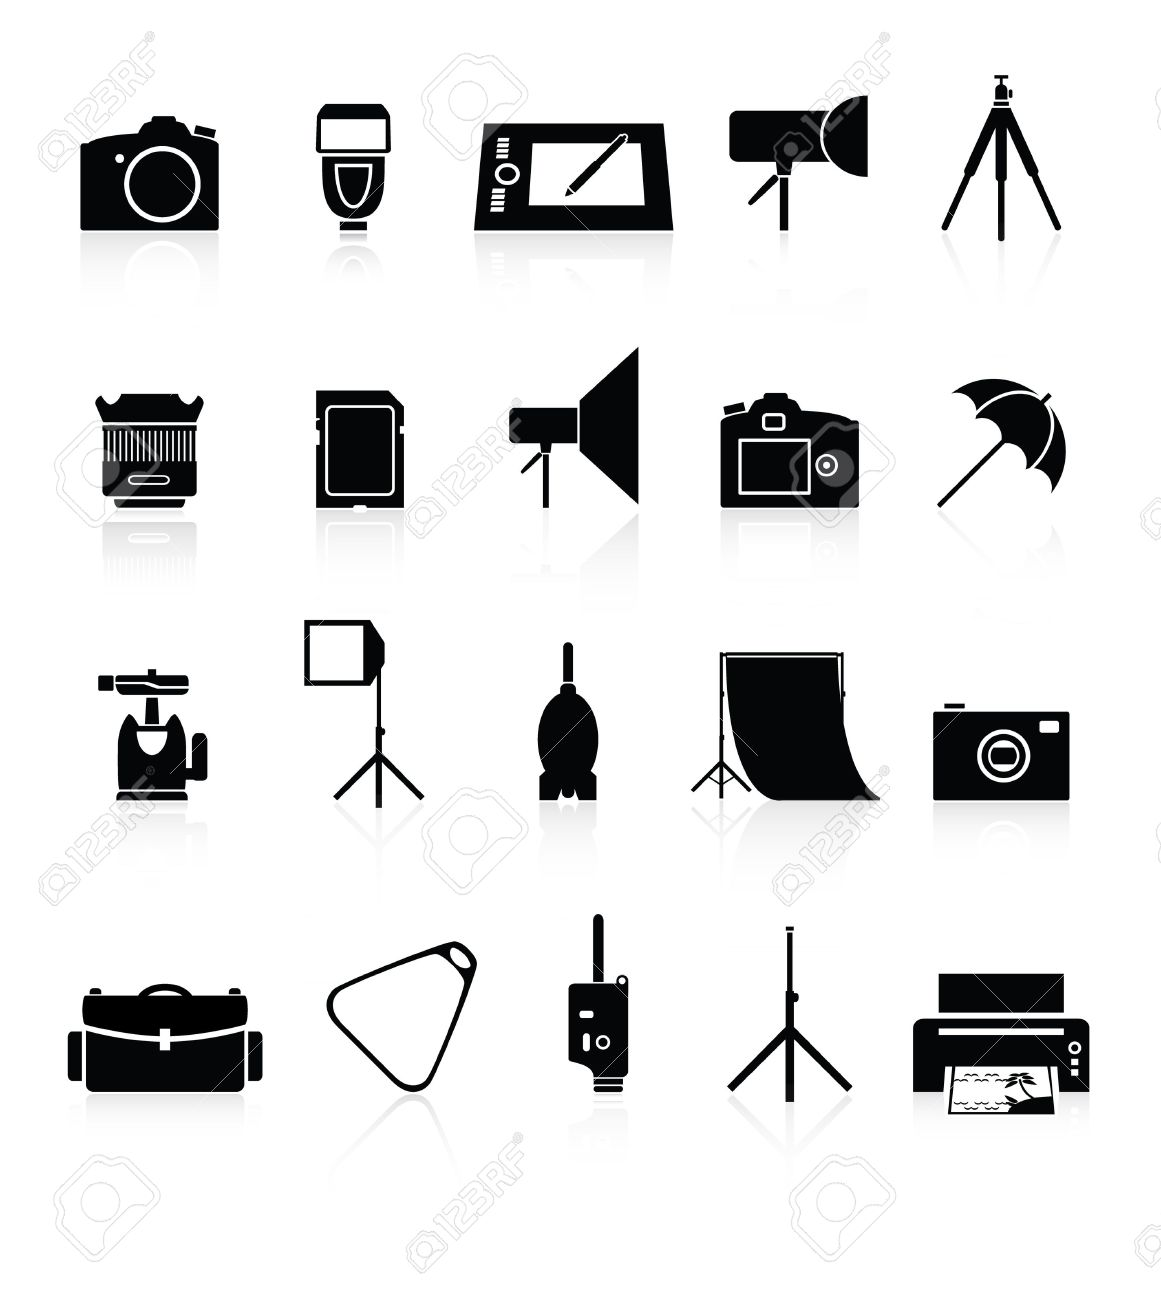 Camera accessories clipart - Clipground for Camera Equipment Clipart  585hul